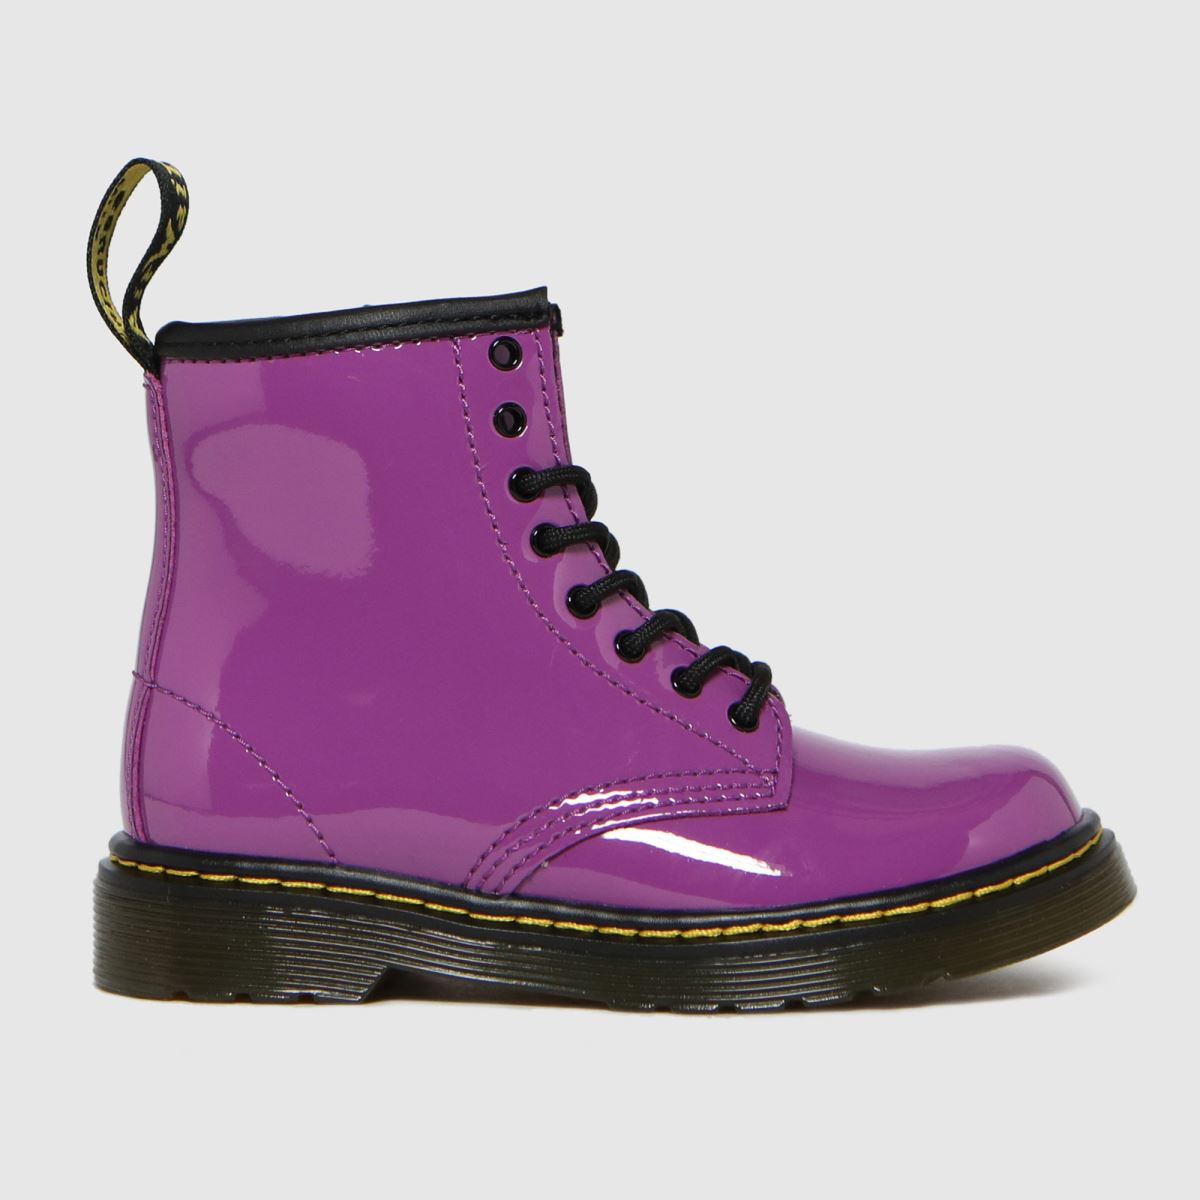 Dr Martens Purple 1460 Boots Toddler